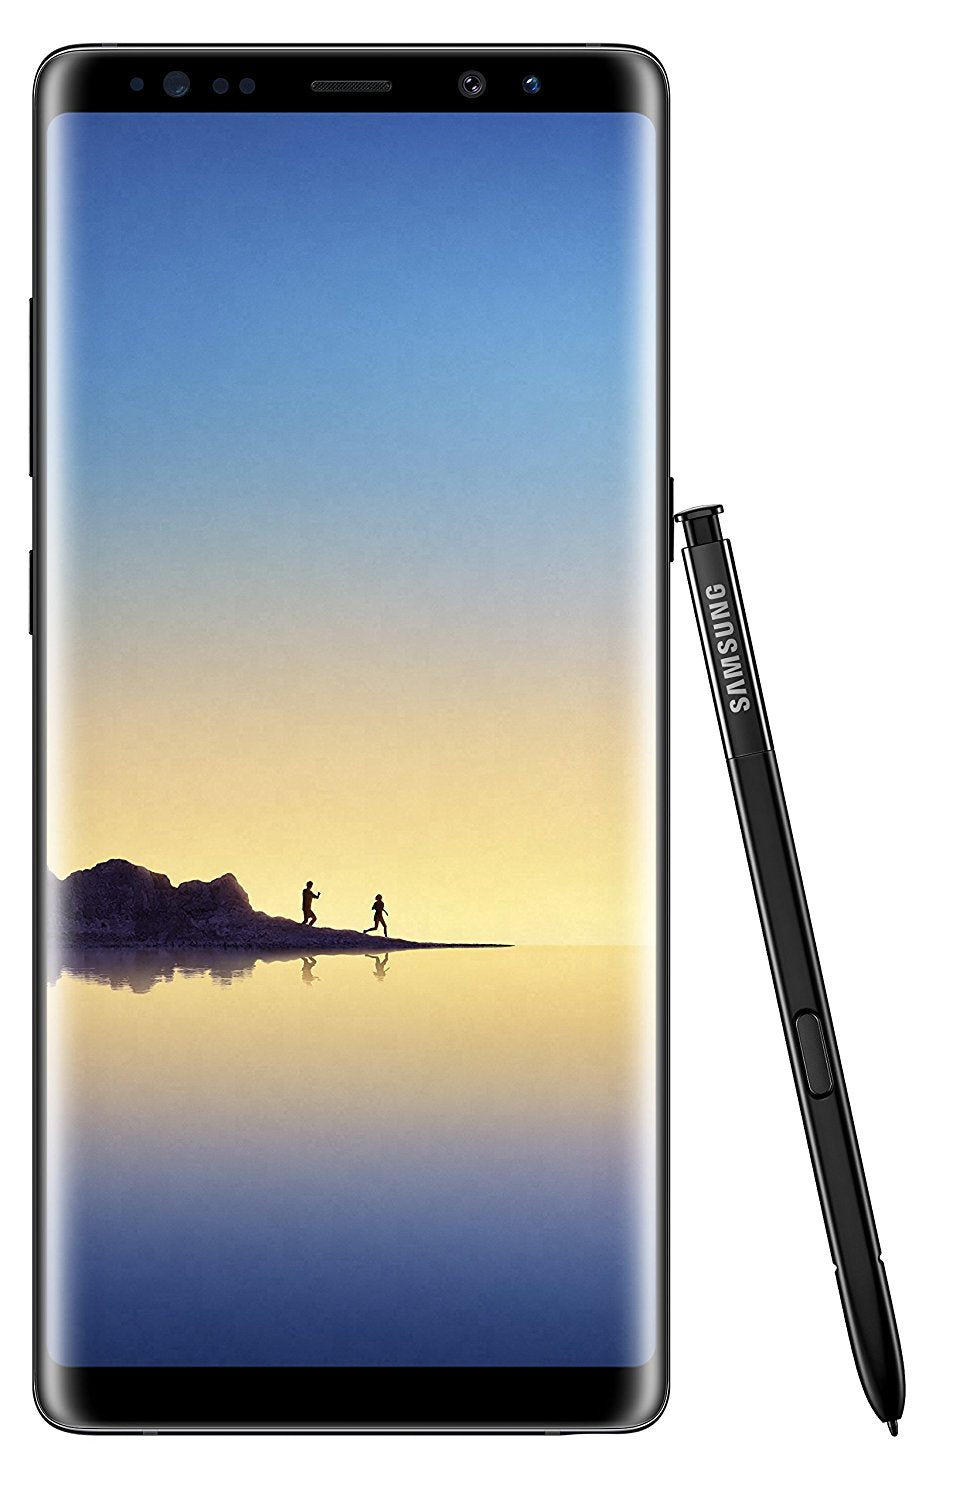 Galaxy Note 8 Smartphone